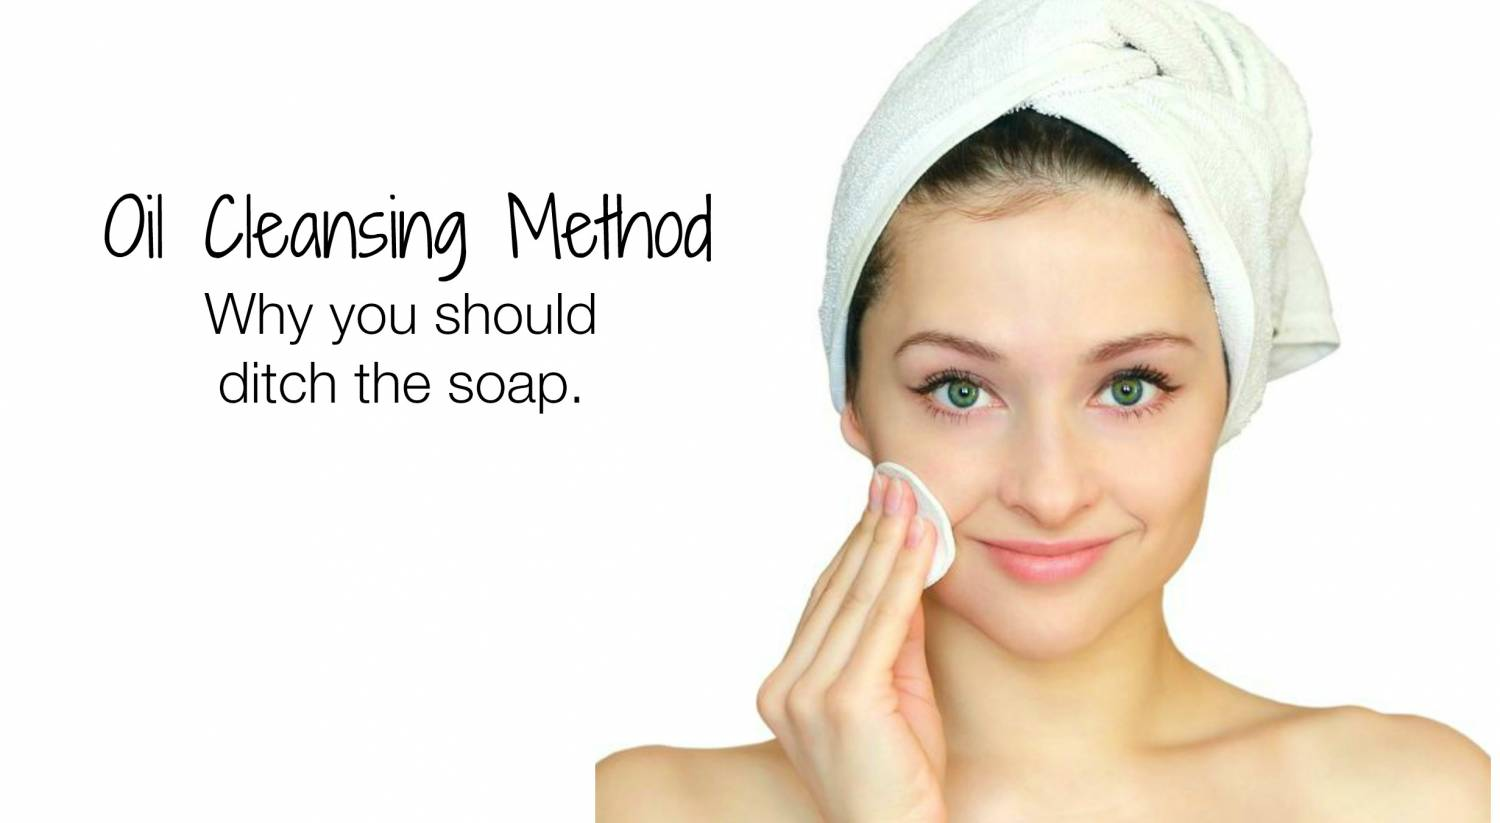 Oil cleansing method